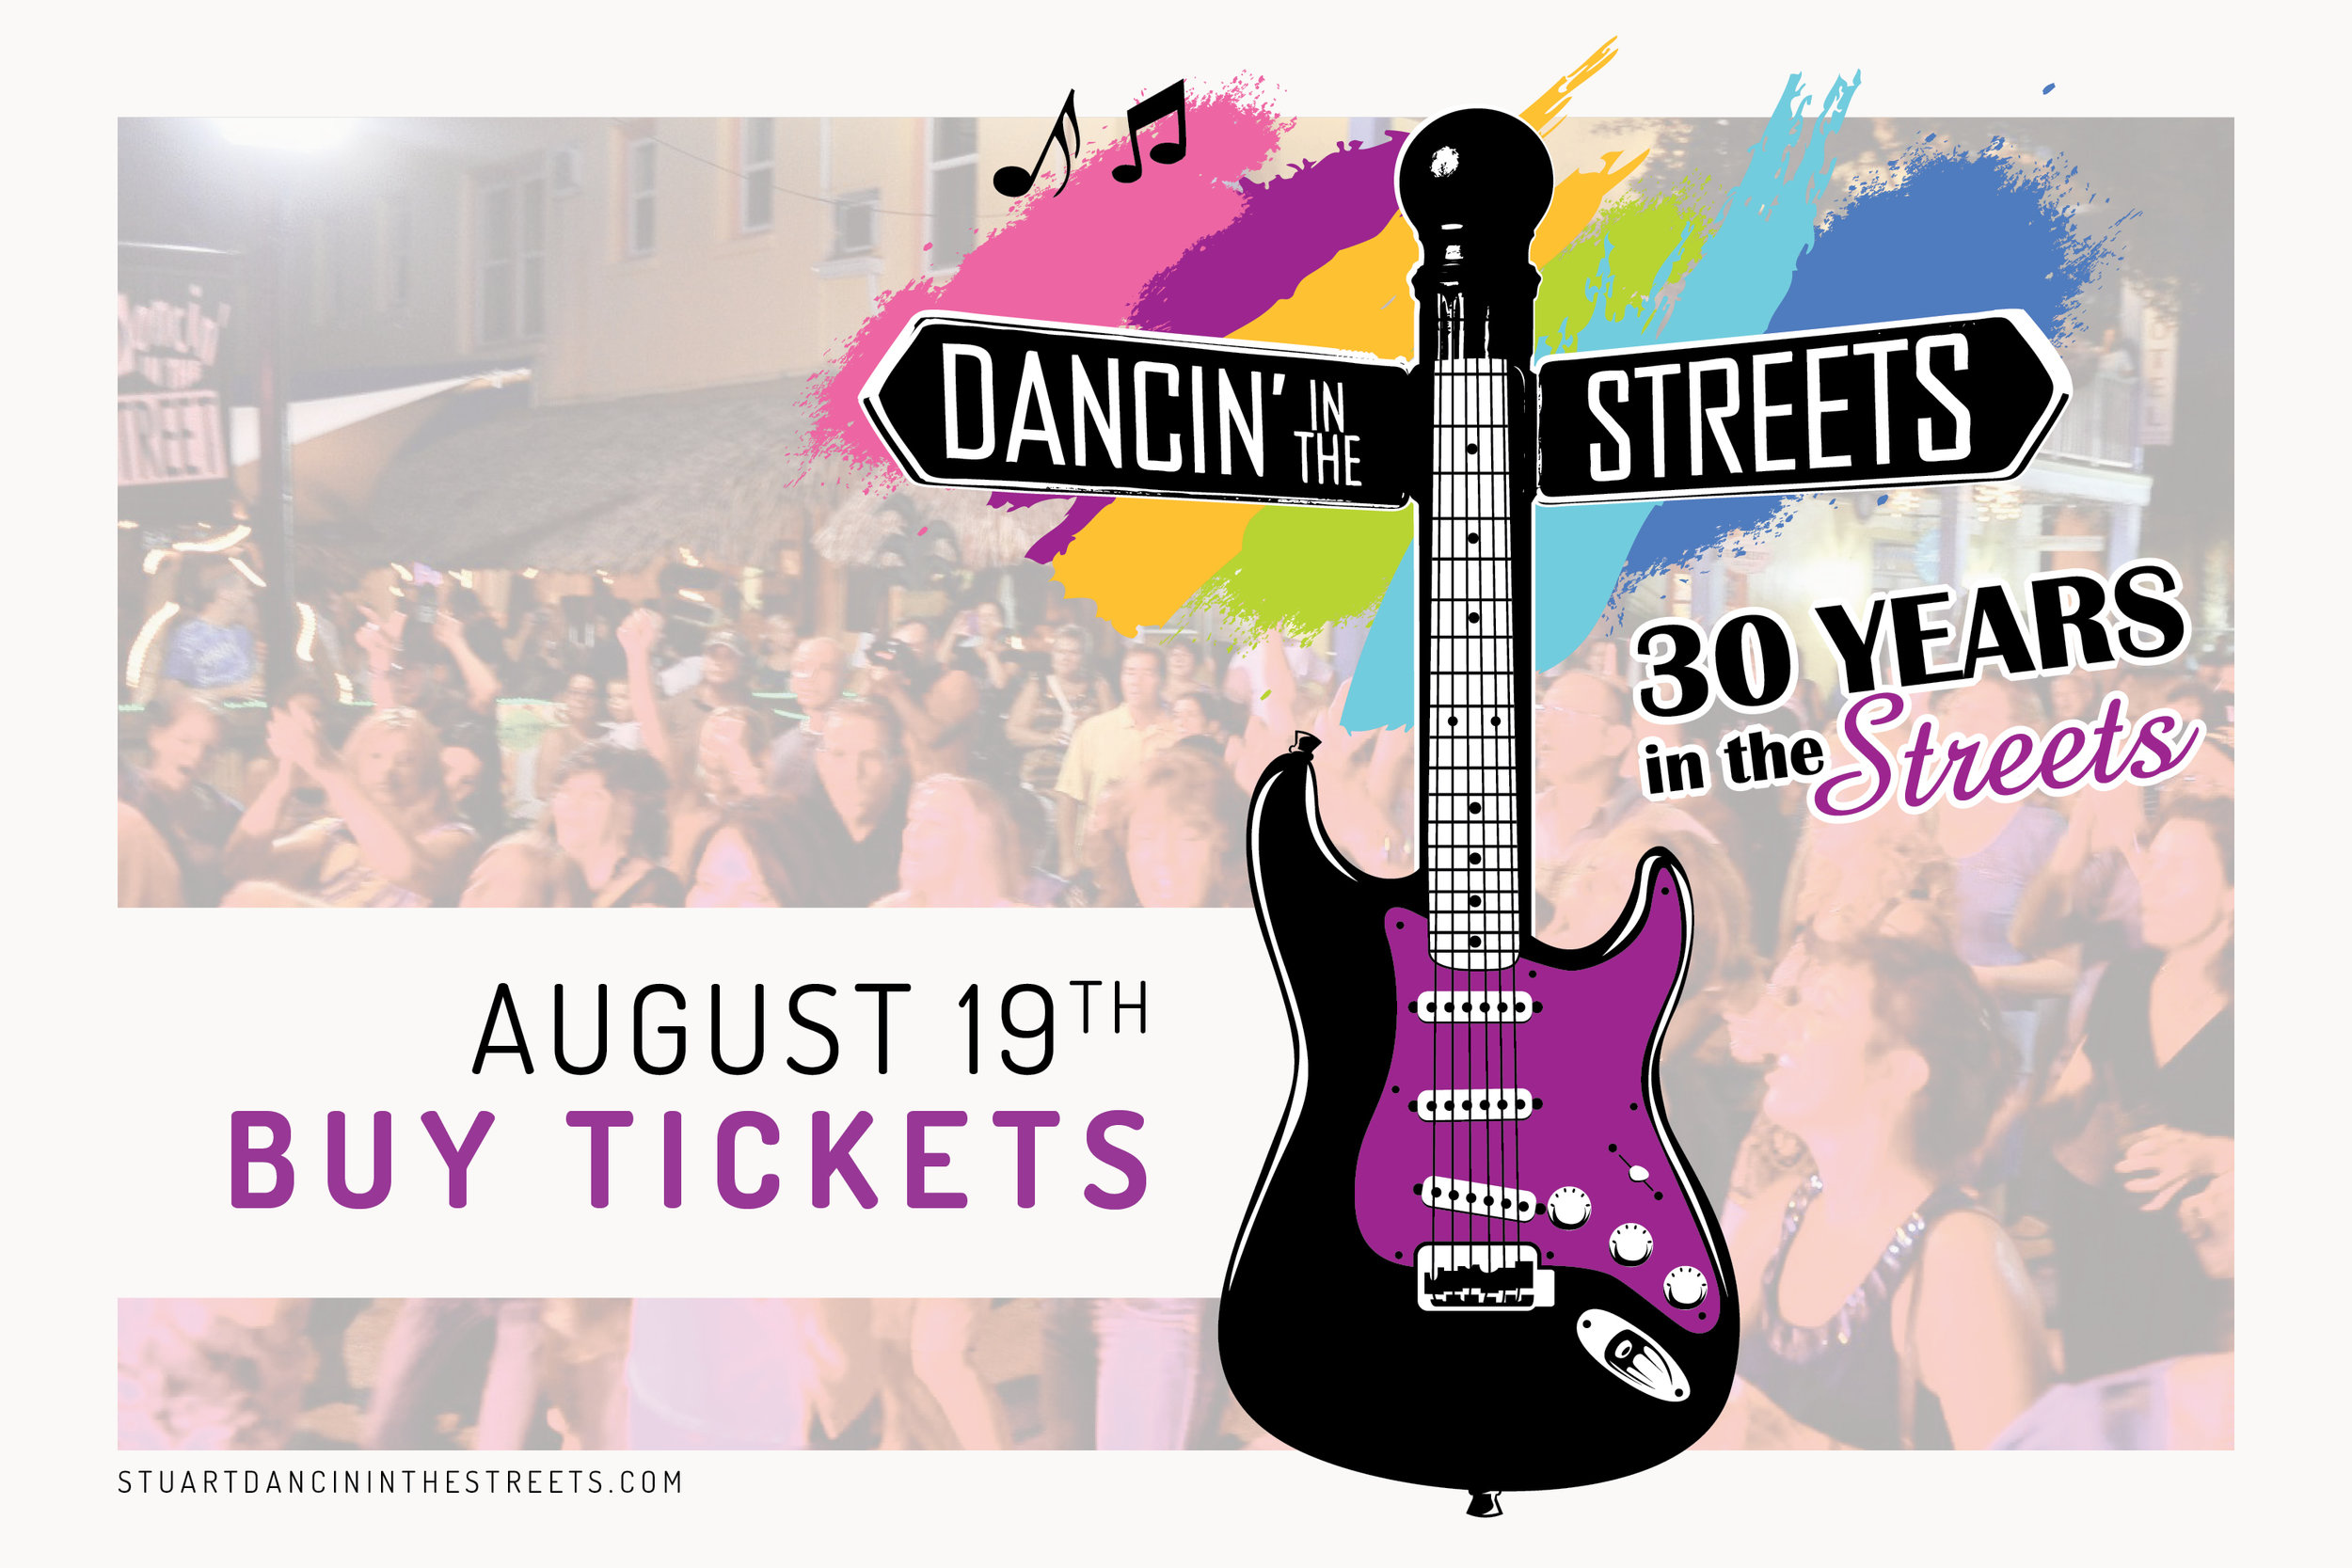 Thank you for your interest in Dancin' in the Streets.     We are unable to host the event this year. Downtown Stuart is undergoing construction which will close Osceola Street and St. Lucie Avenue in July and August. The sidewalks and all of our downtown businesses will remain open.